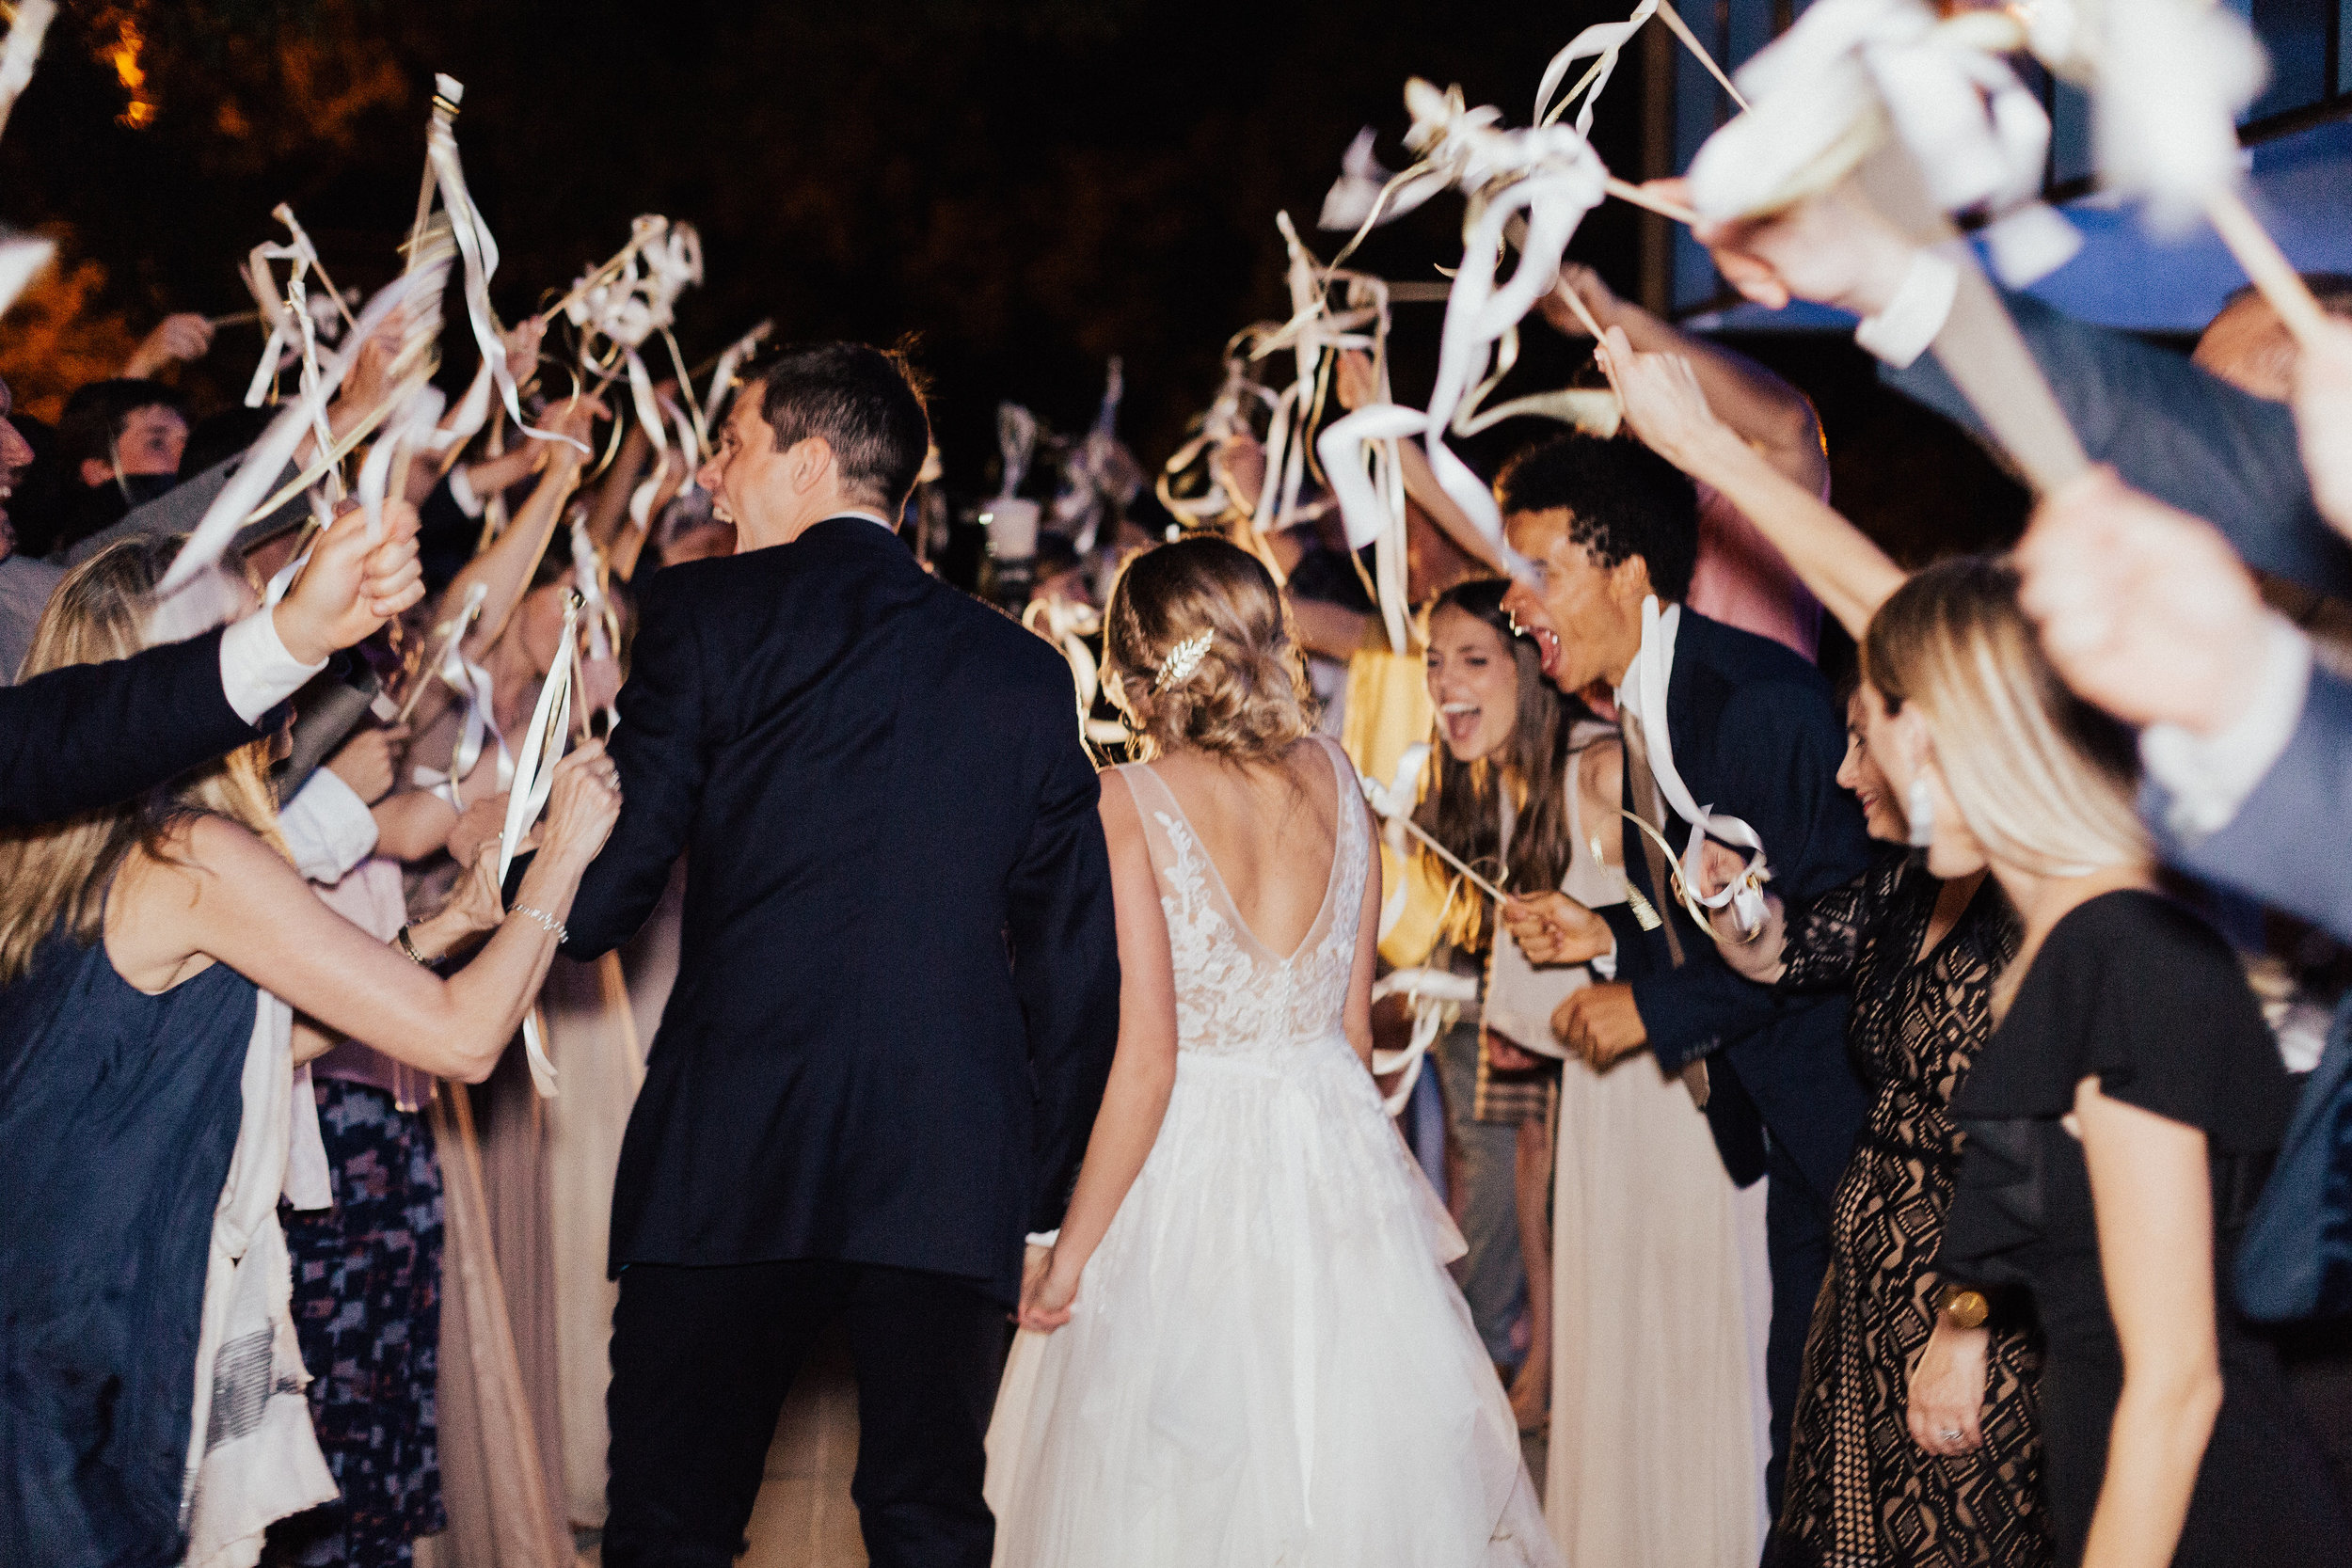 Southern Fete, Southern Wedding, Bride and Groom, Ribbon Exit, Carolynn Seibert Photography, Easytown Sound Co.